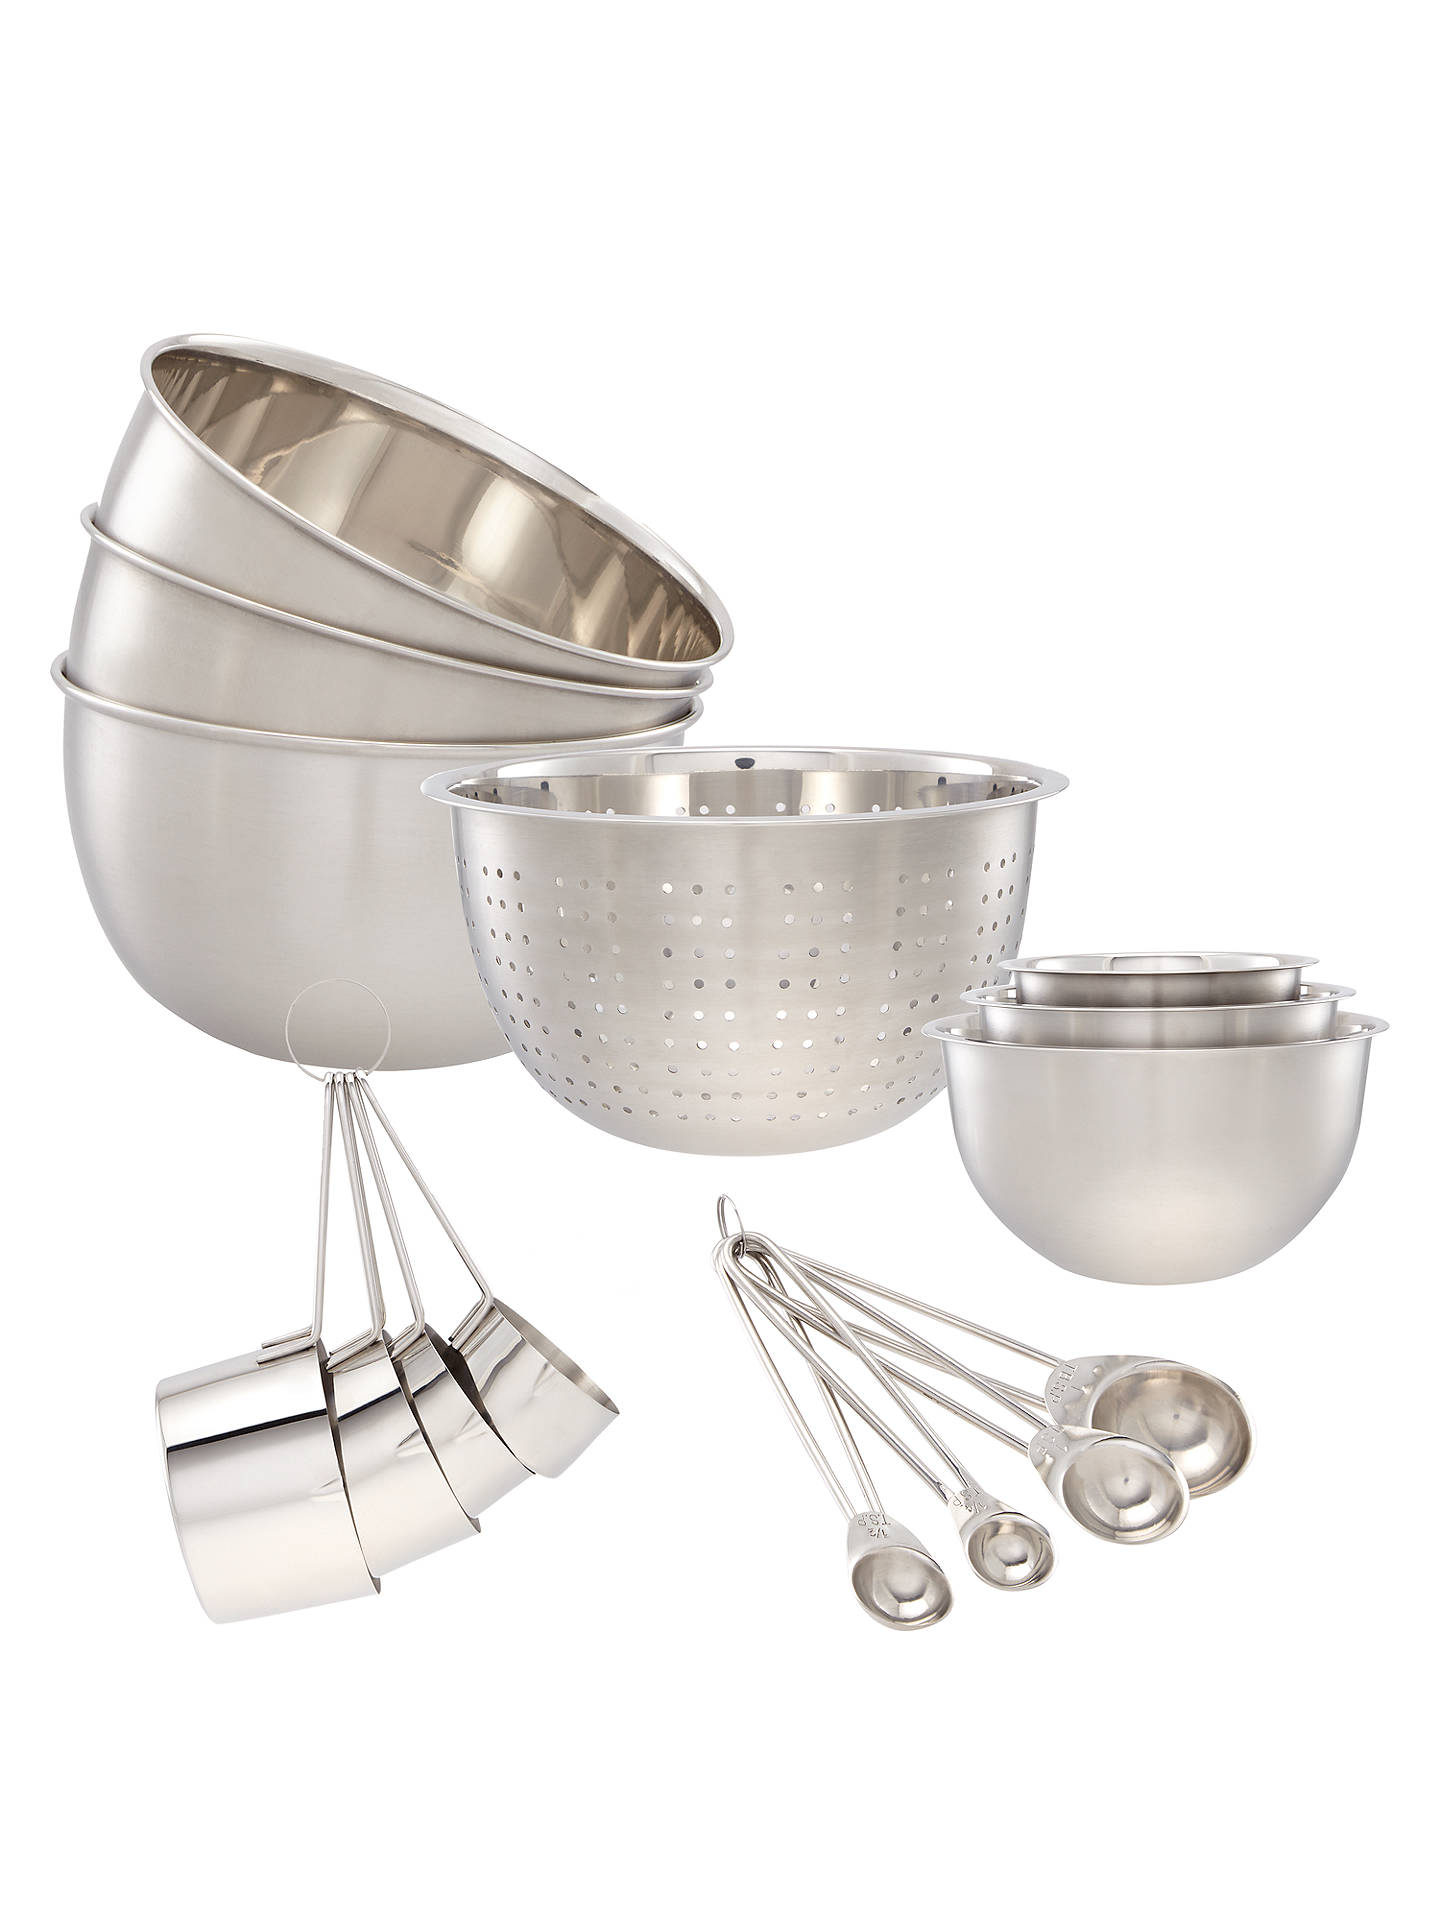 John Lewis Partners Stainless Steel Kitchen Essentials Set 15